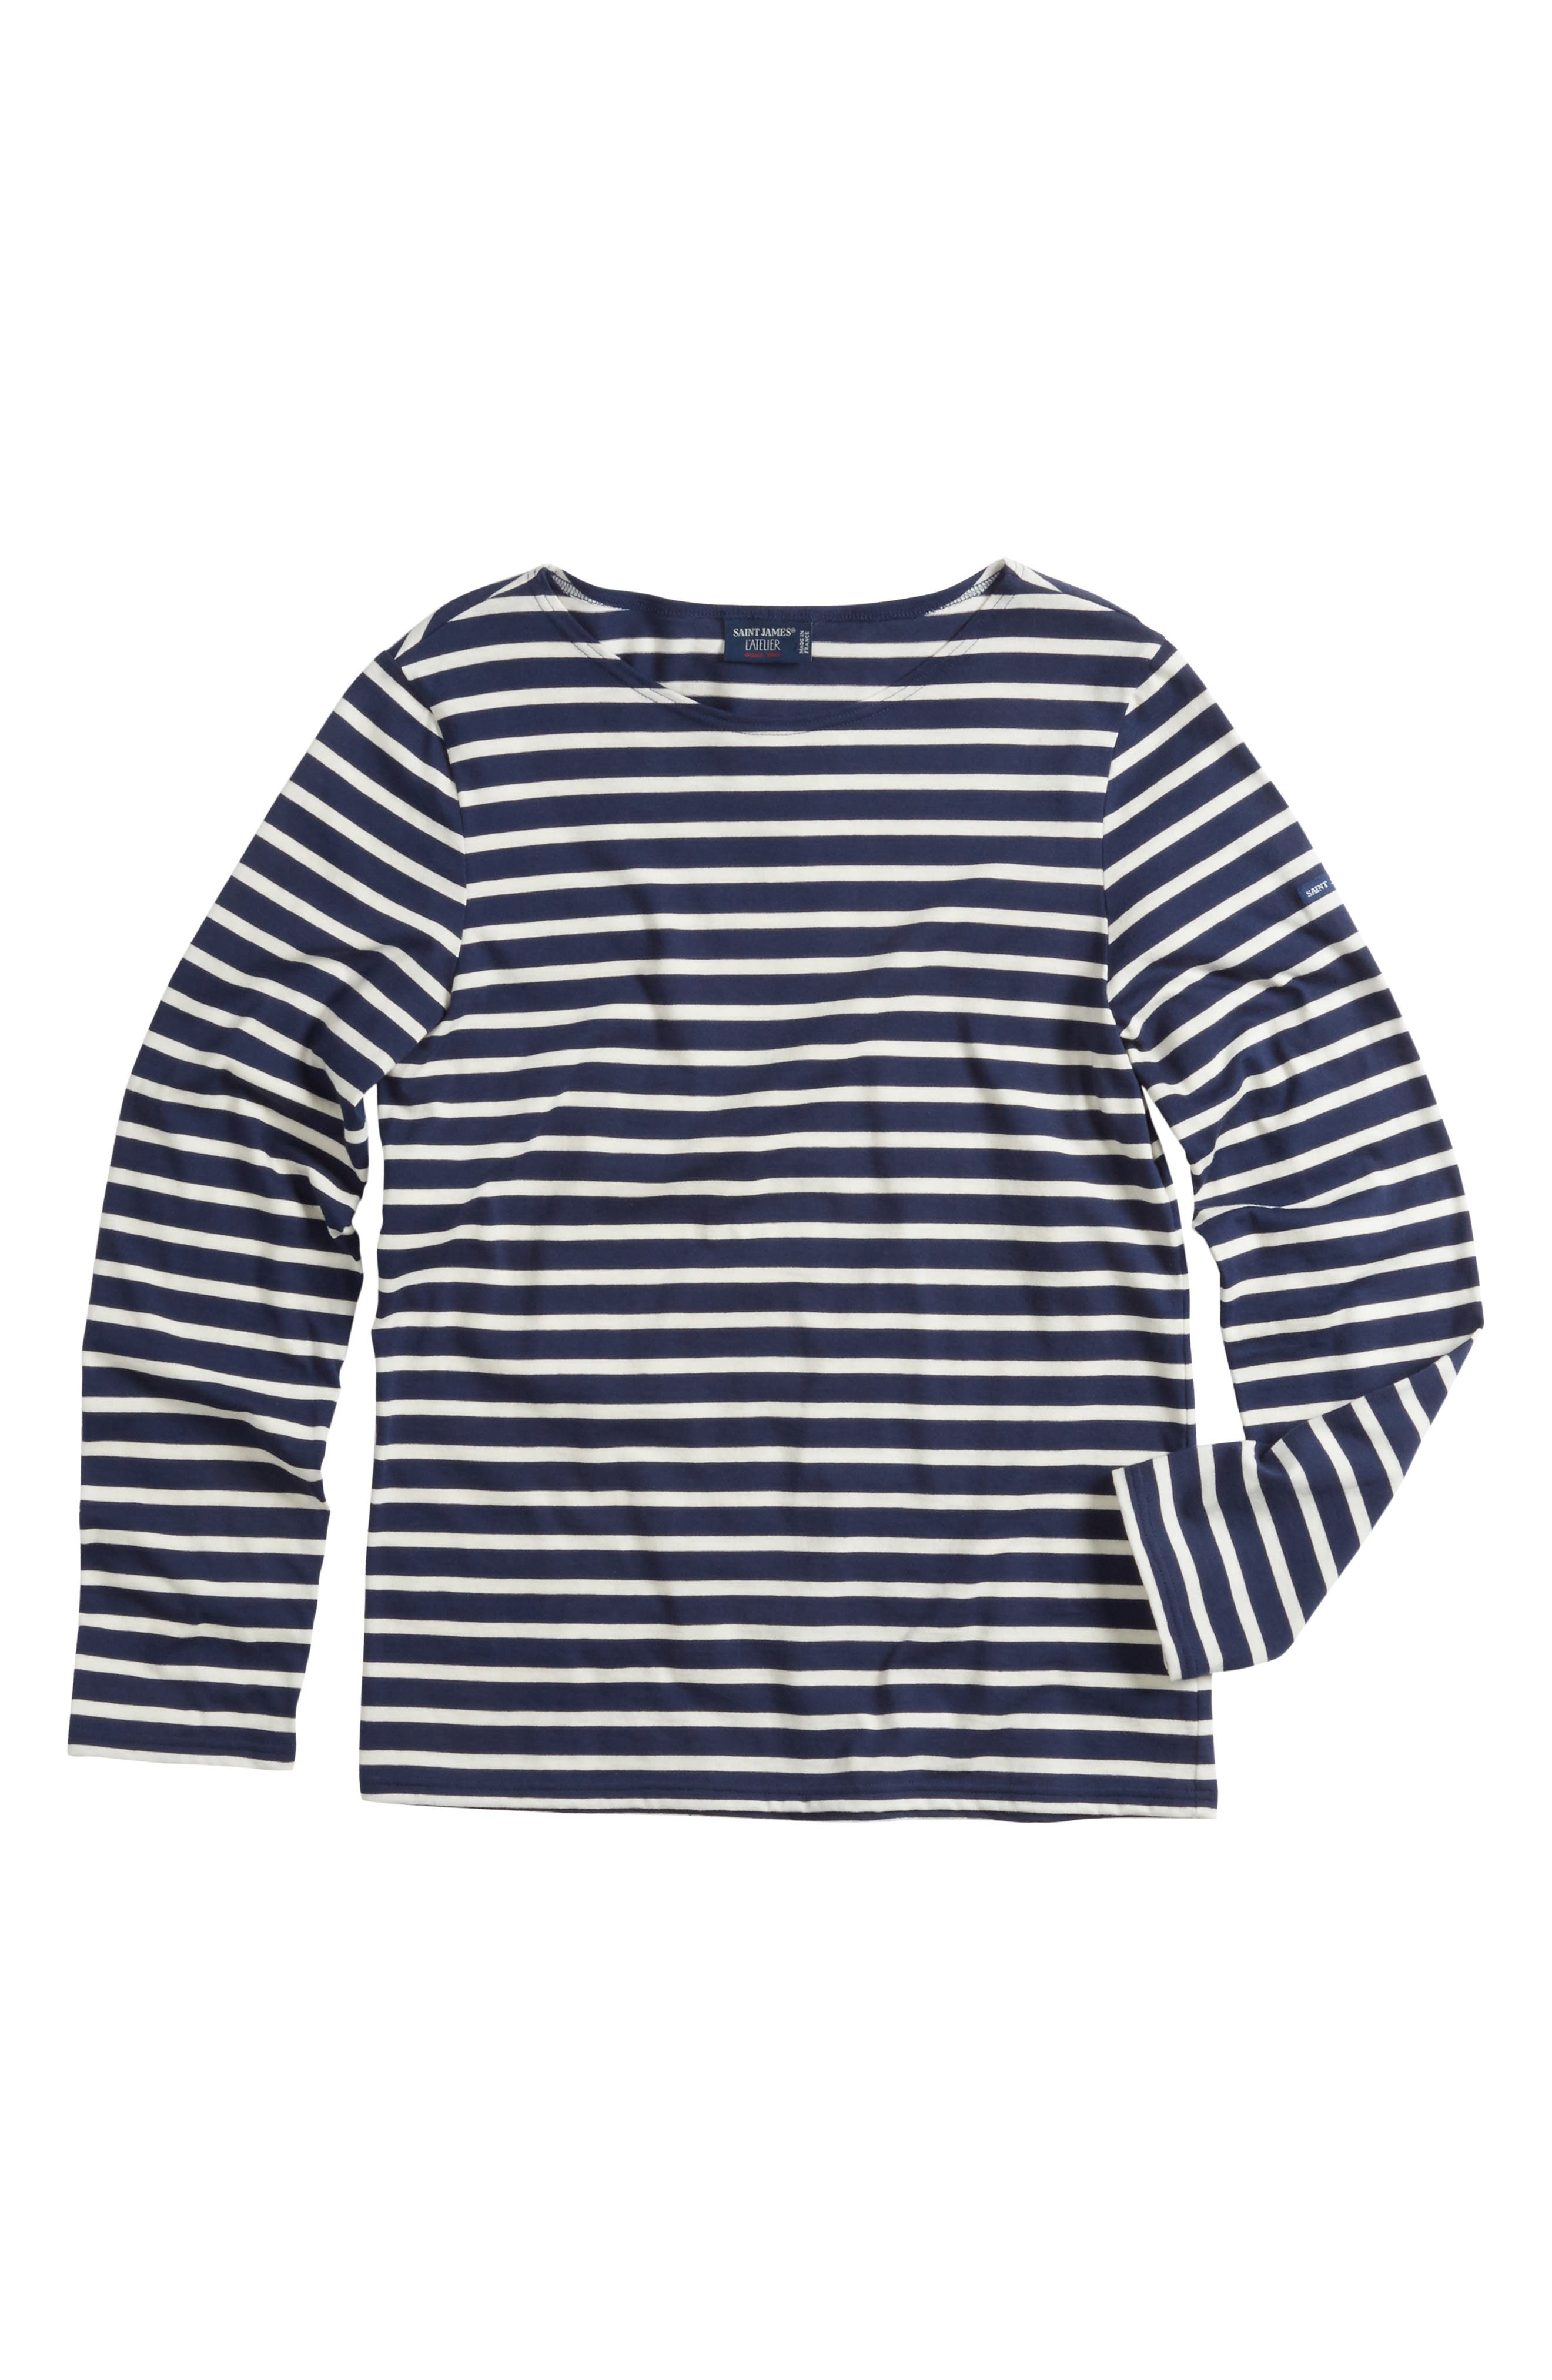 Alternate Image 1 Selected - Saint James Minquiers Moderne Striped Sailor Shirt (Unisex)